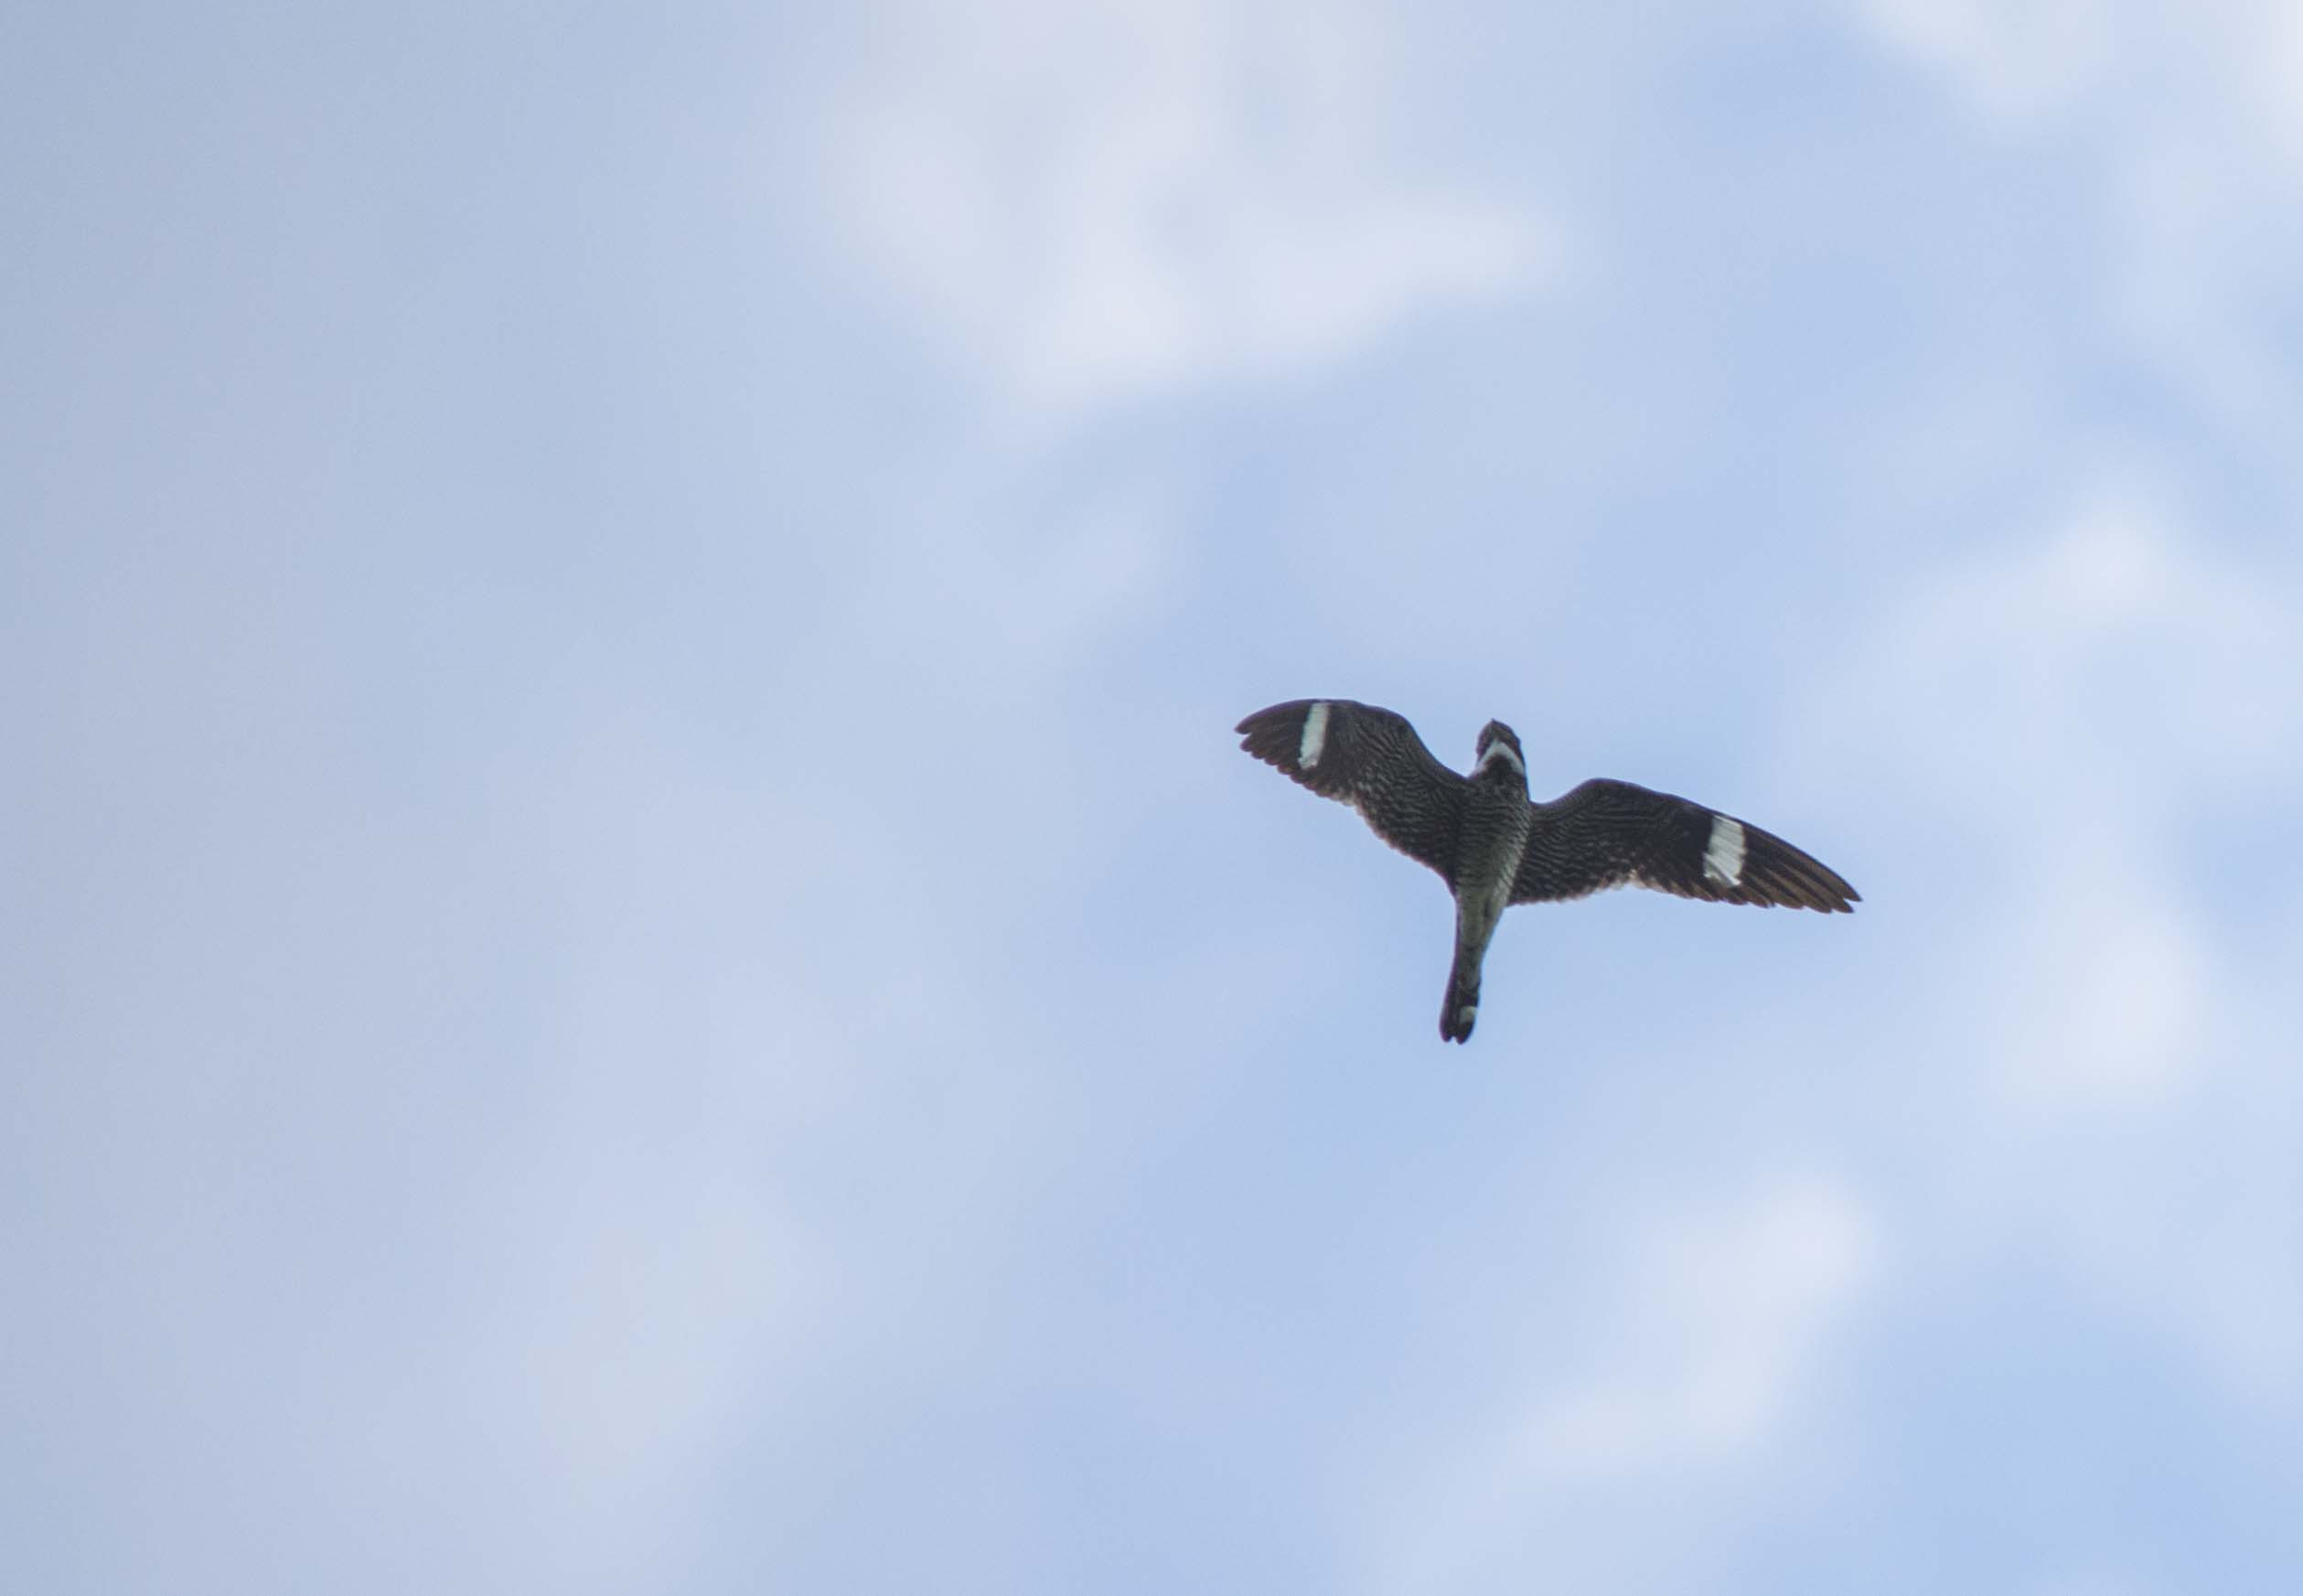 Common Nighthawk giving me a low flyby